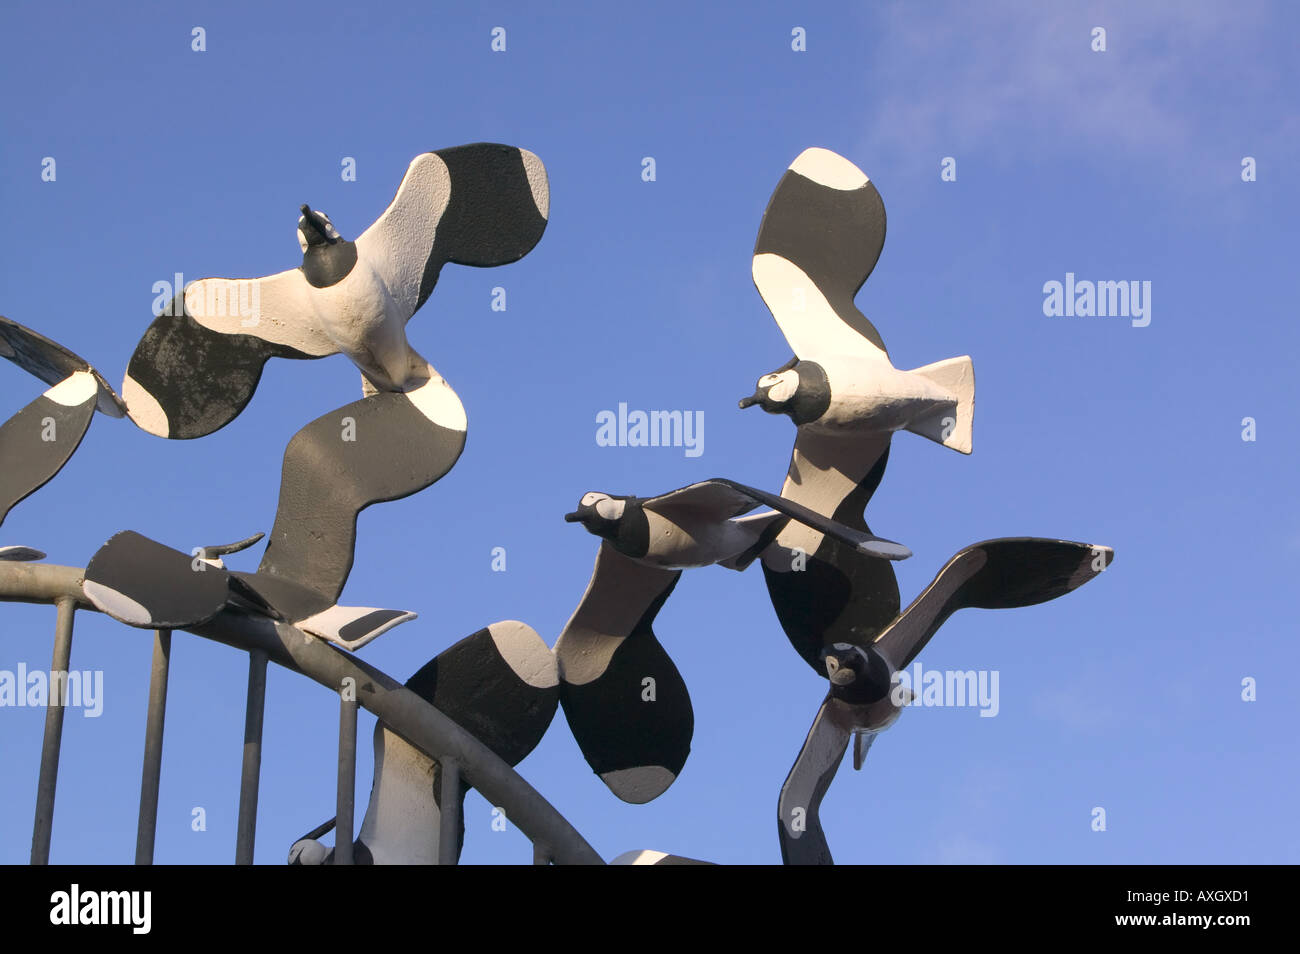 Lapwing Sculpture as part of the Tern project in Morecambe, Lancashire, UK - Stock Image